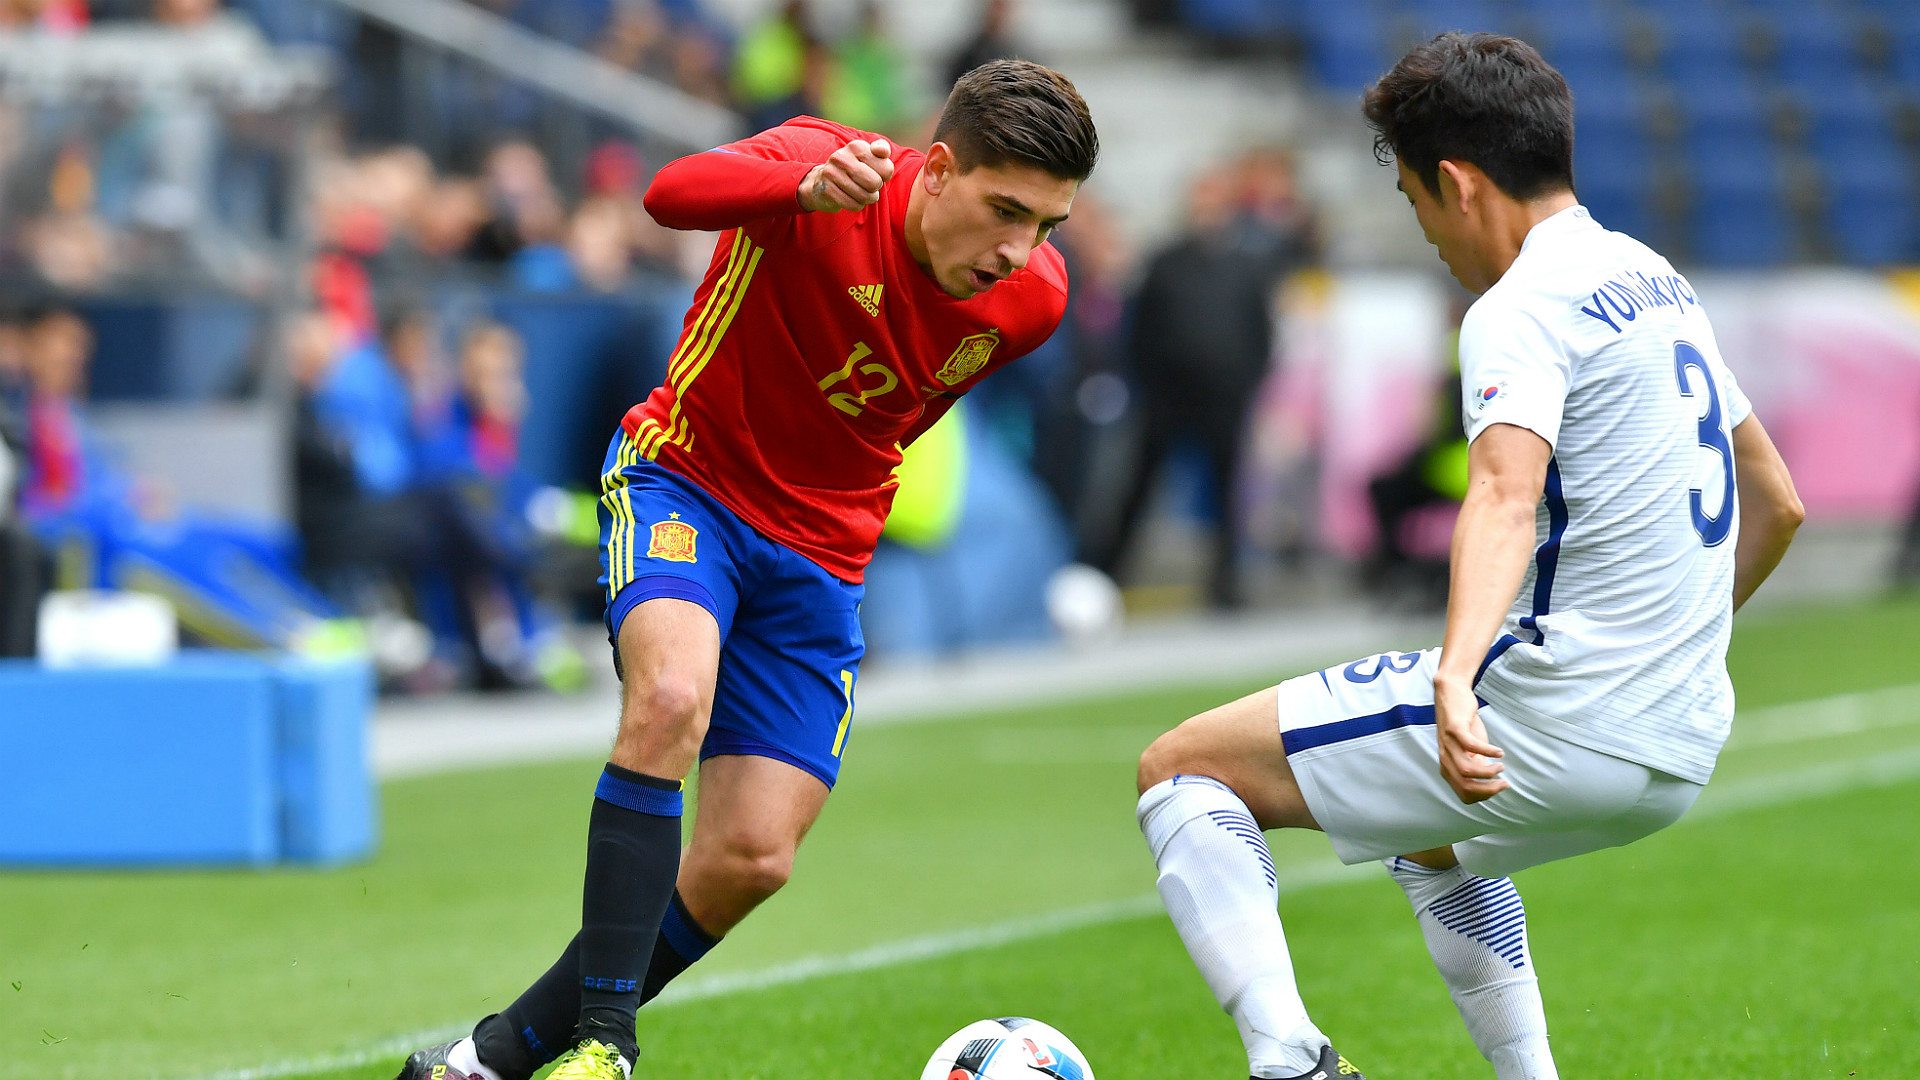 Hector Bellerin wants Barcelona transfer, confirms Spain teammate Denis Suarez